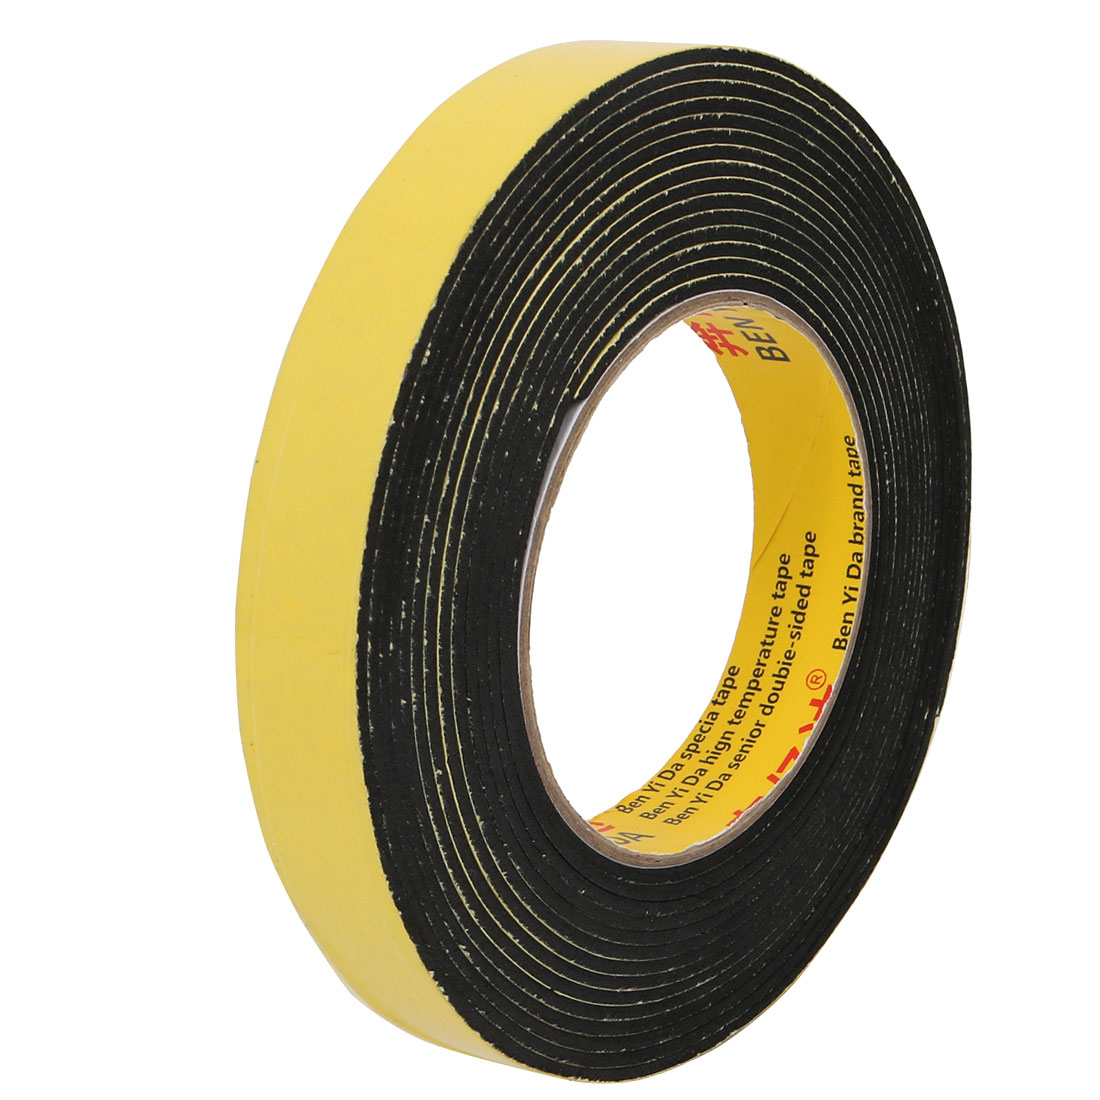 20mm Width 2mm Thickness Double-Side Sealed Sponge Tape Red 5M Length Yellow